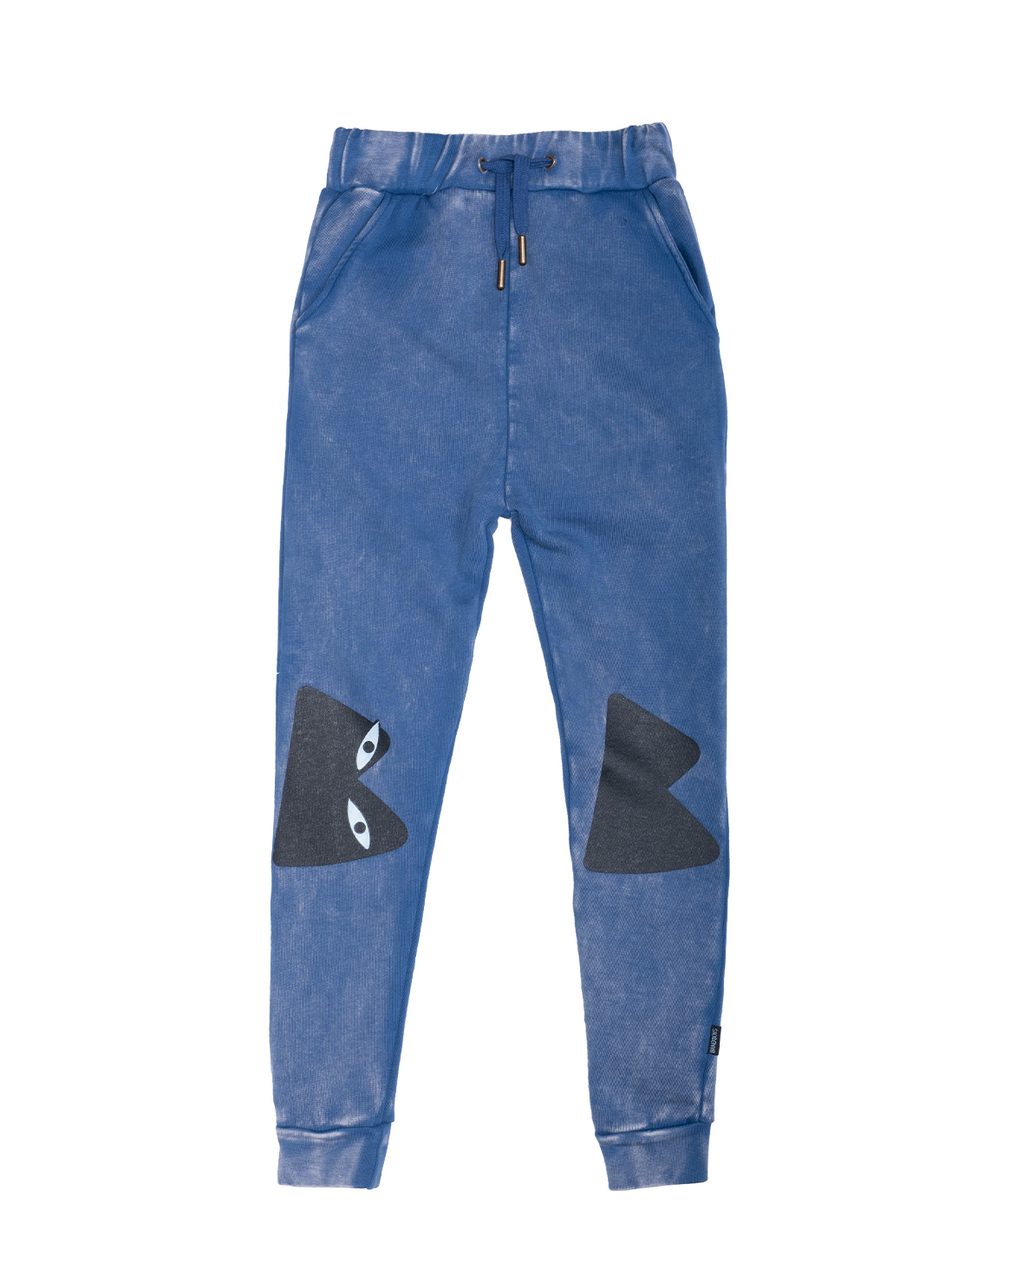 Band of Boys - Bs Knees Skinny Trackie - Vintage Blue